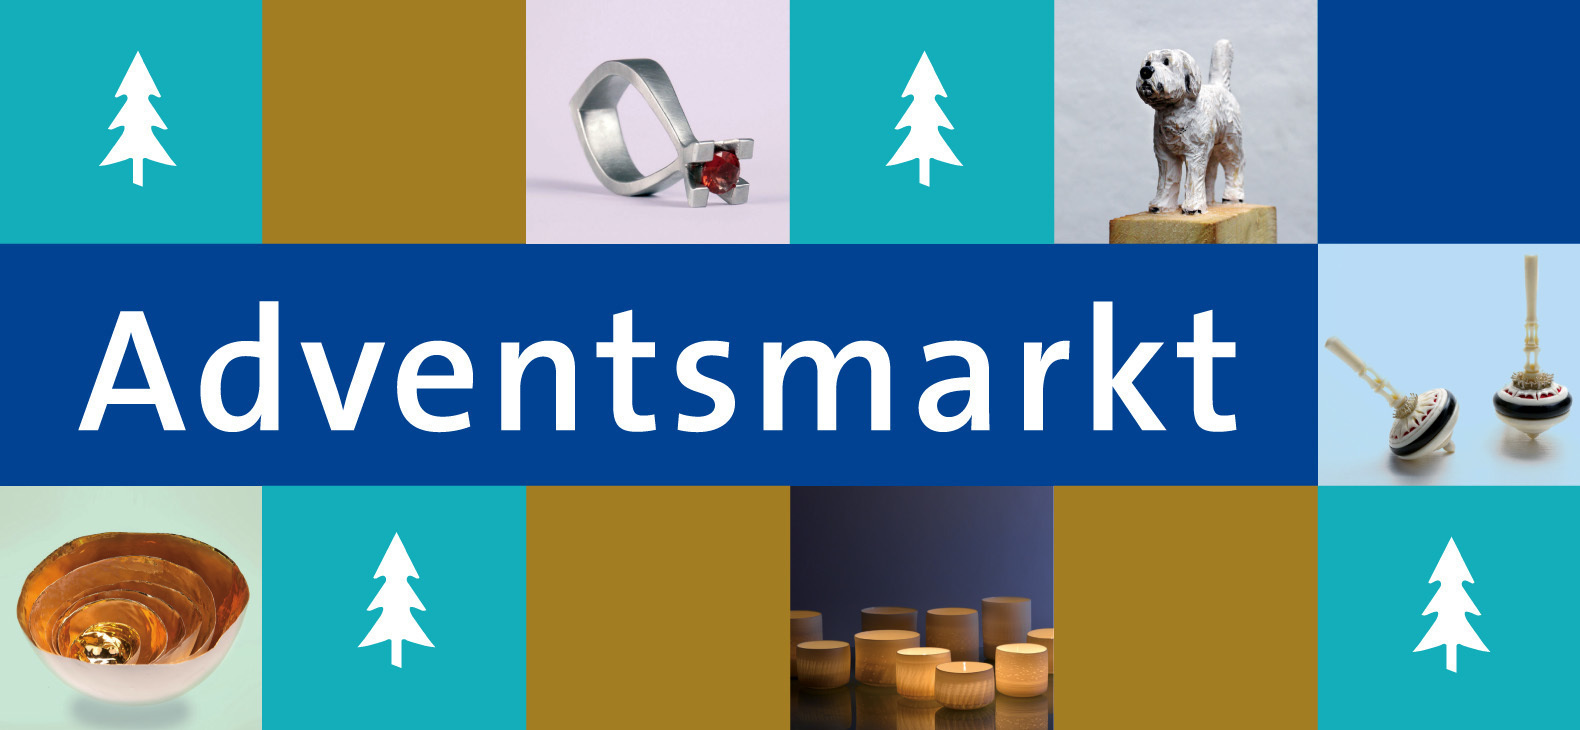 Advetnsmarkt 2019